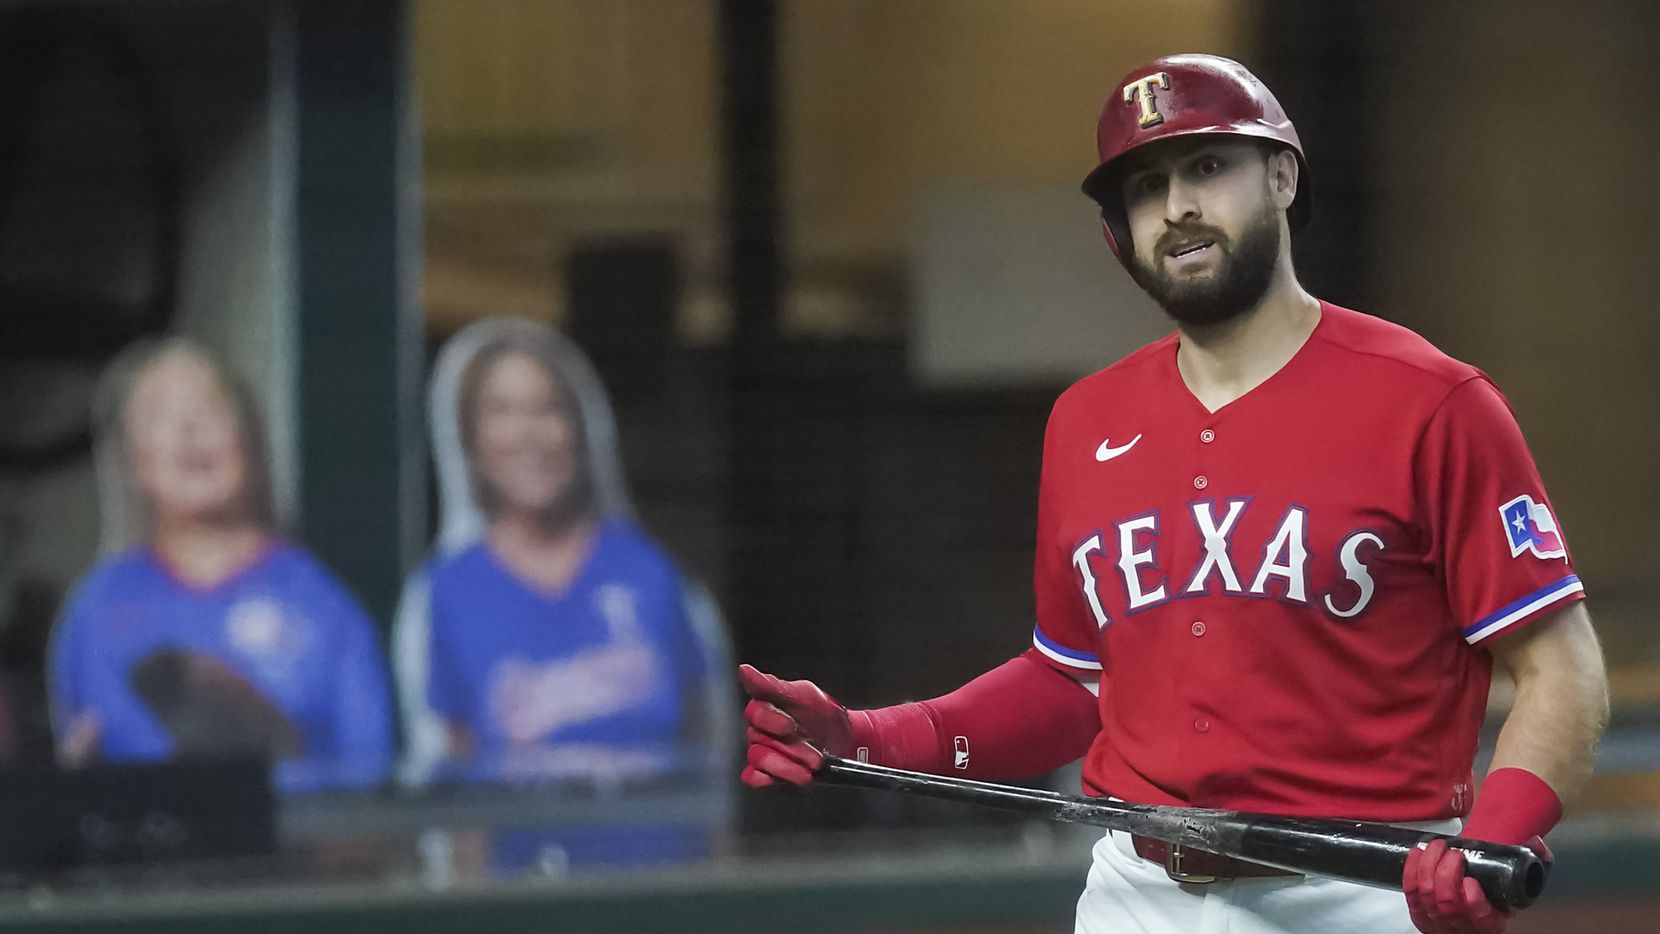 Texas Rangers outfielder Joey Gallo heads back to the dugout after a called third strike with the bases loaded during the third inning against the Los Angeles Dodgers at Globe Life Field on Sunday, Aug. 30, 2020.